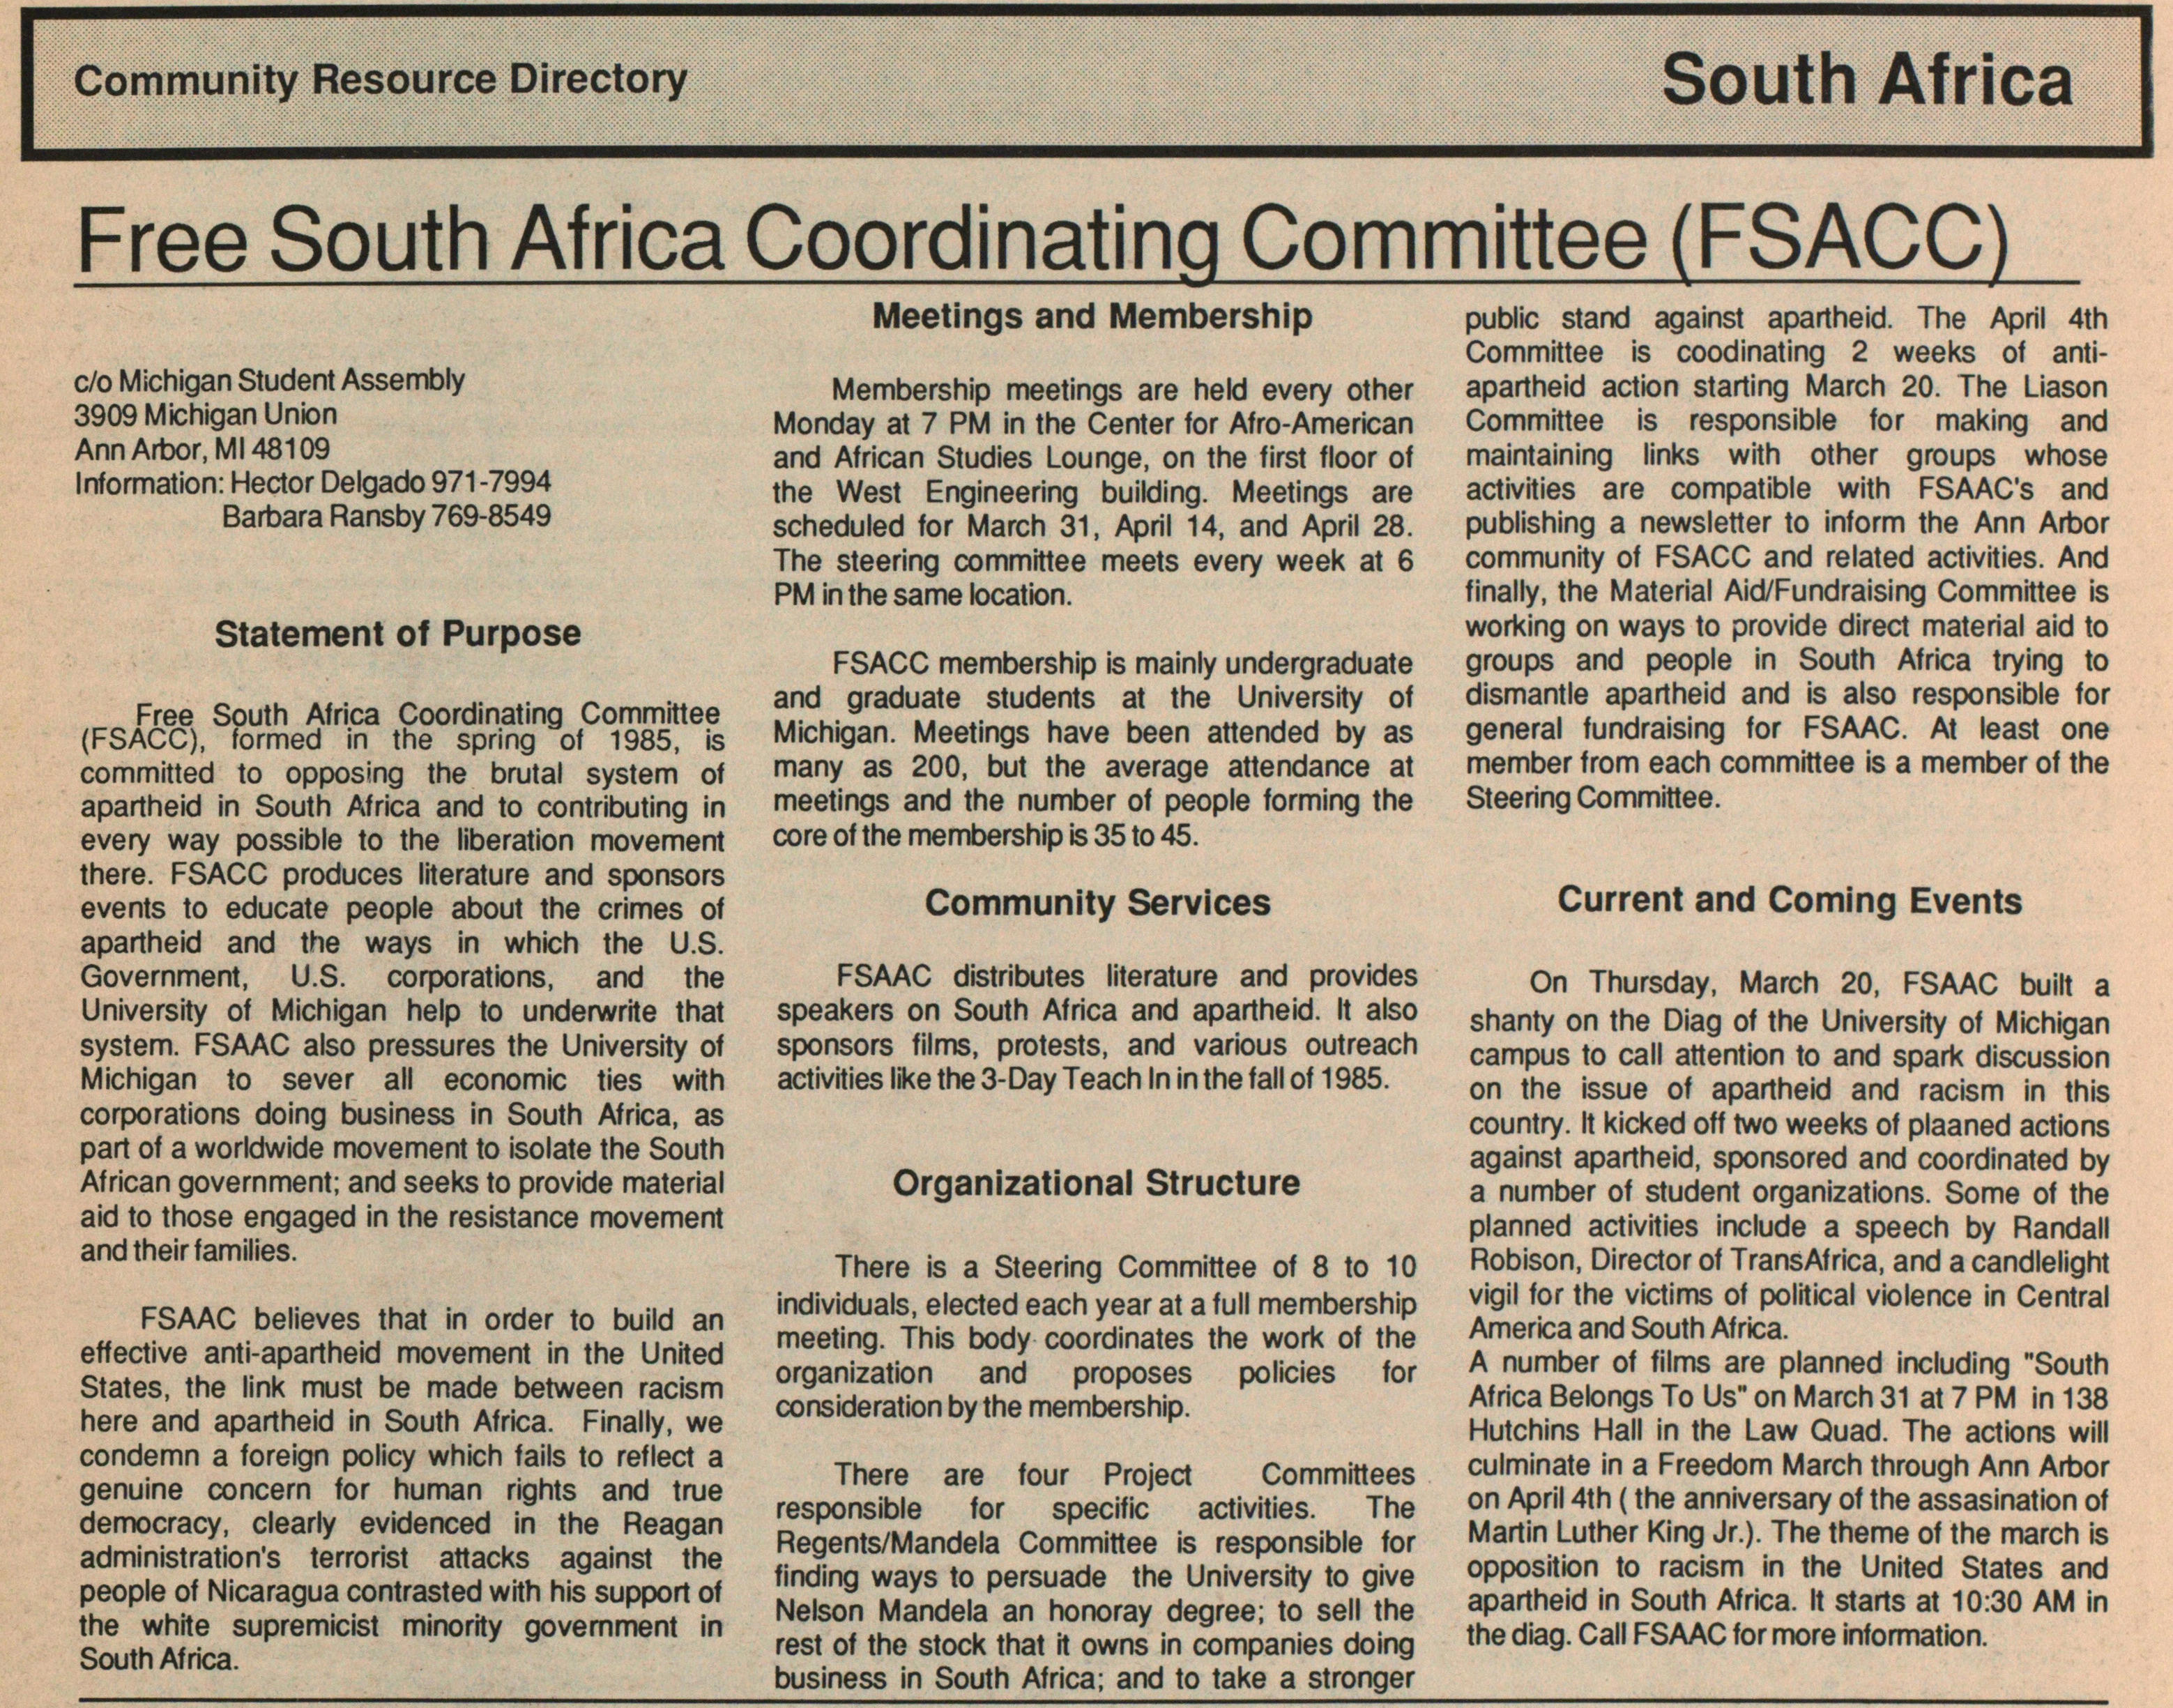 Free South Africa Coordinating Committee (FSACC) image